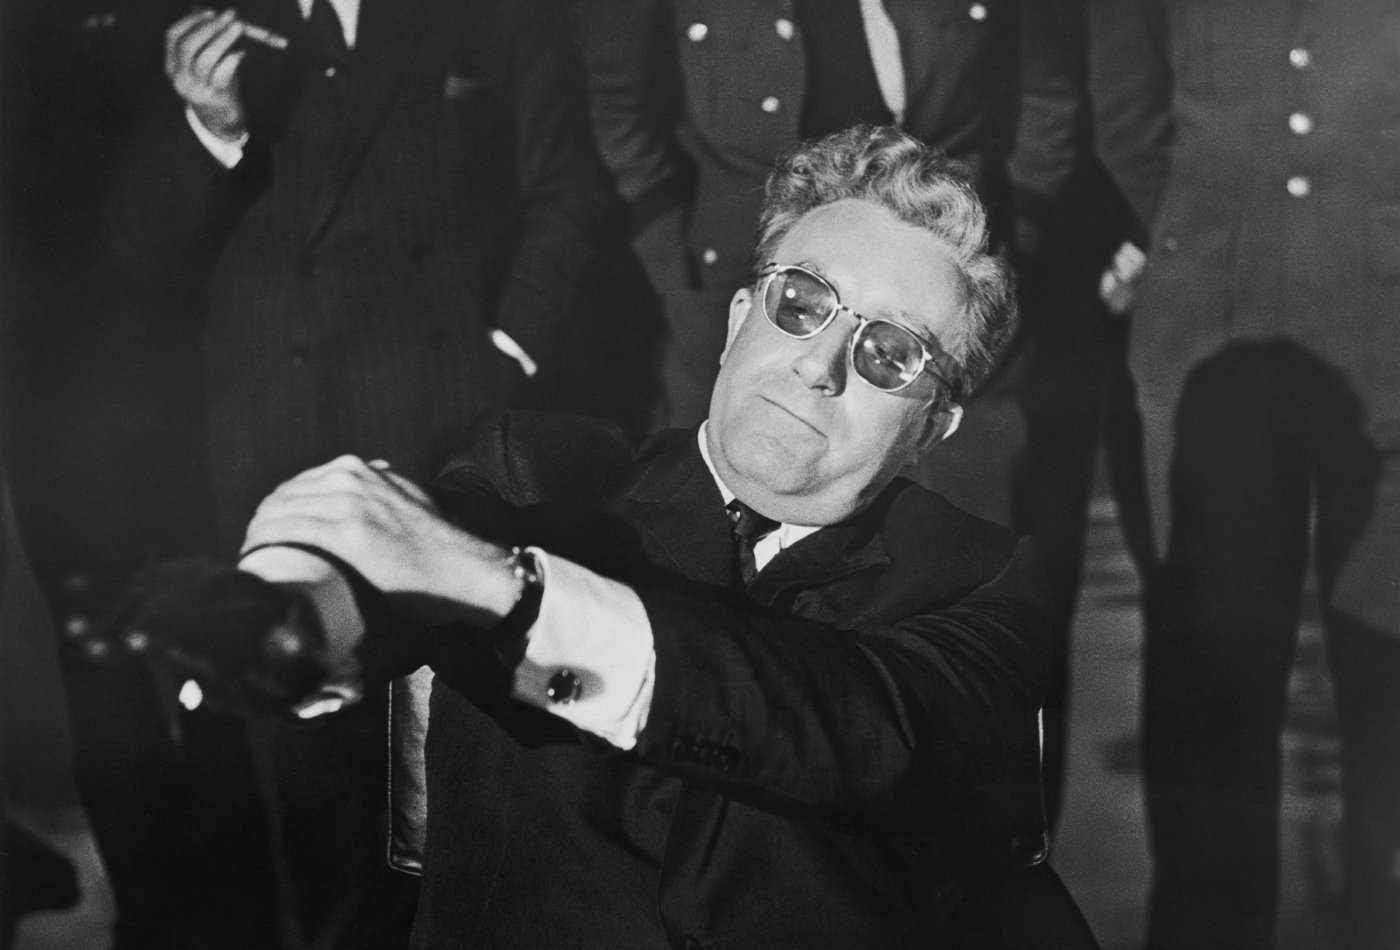 WAS PETER SELLERS ALSO A NAZI?